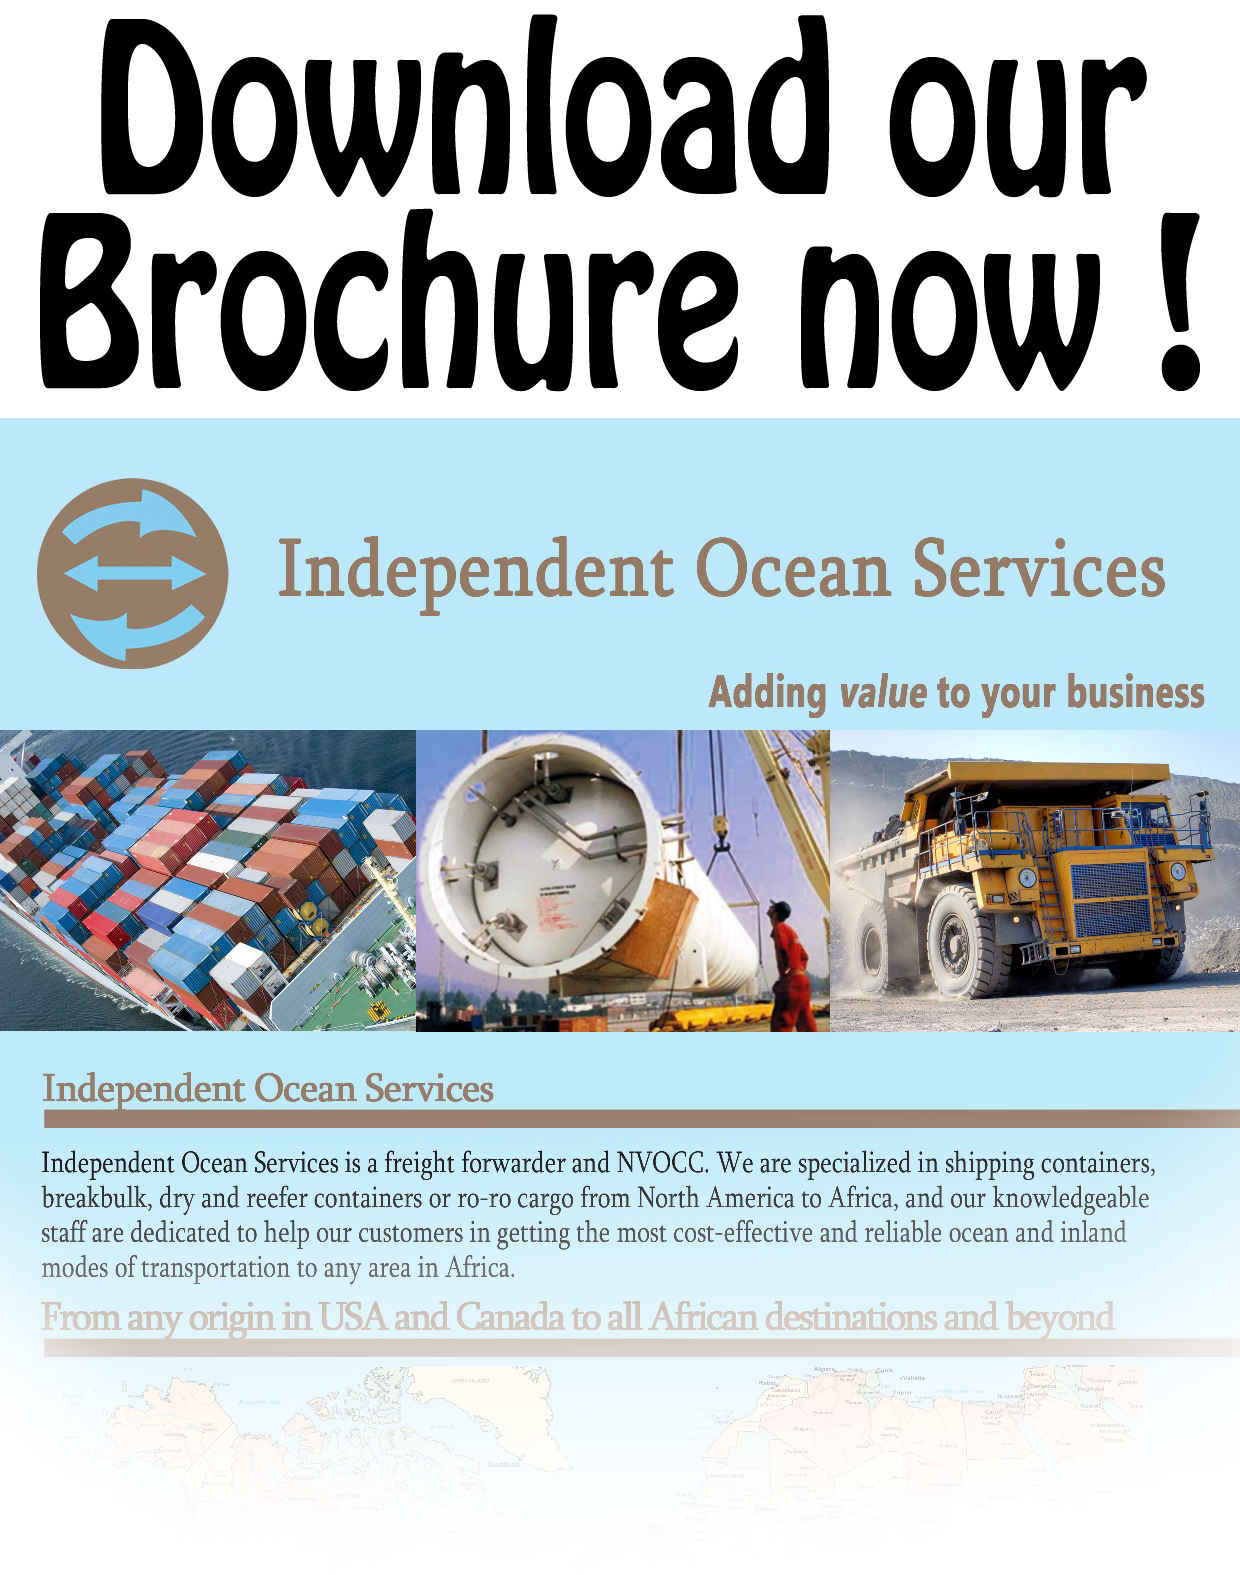 Independent Ocean Services - Brochure - All the information about our transportation services, African destinations and contact details.